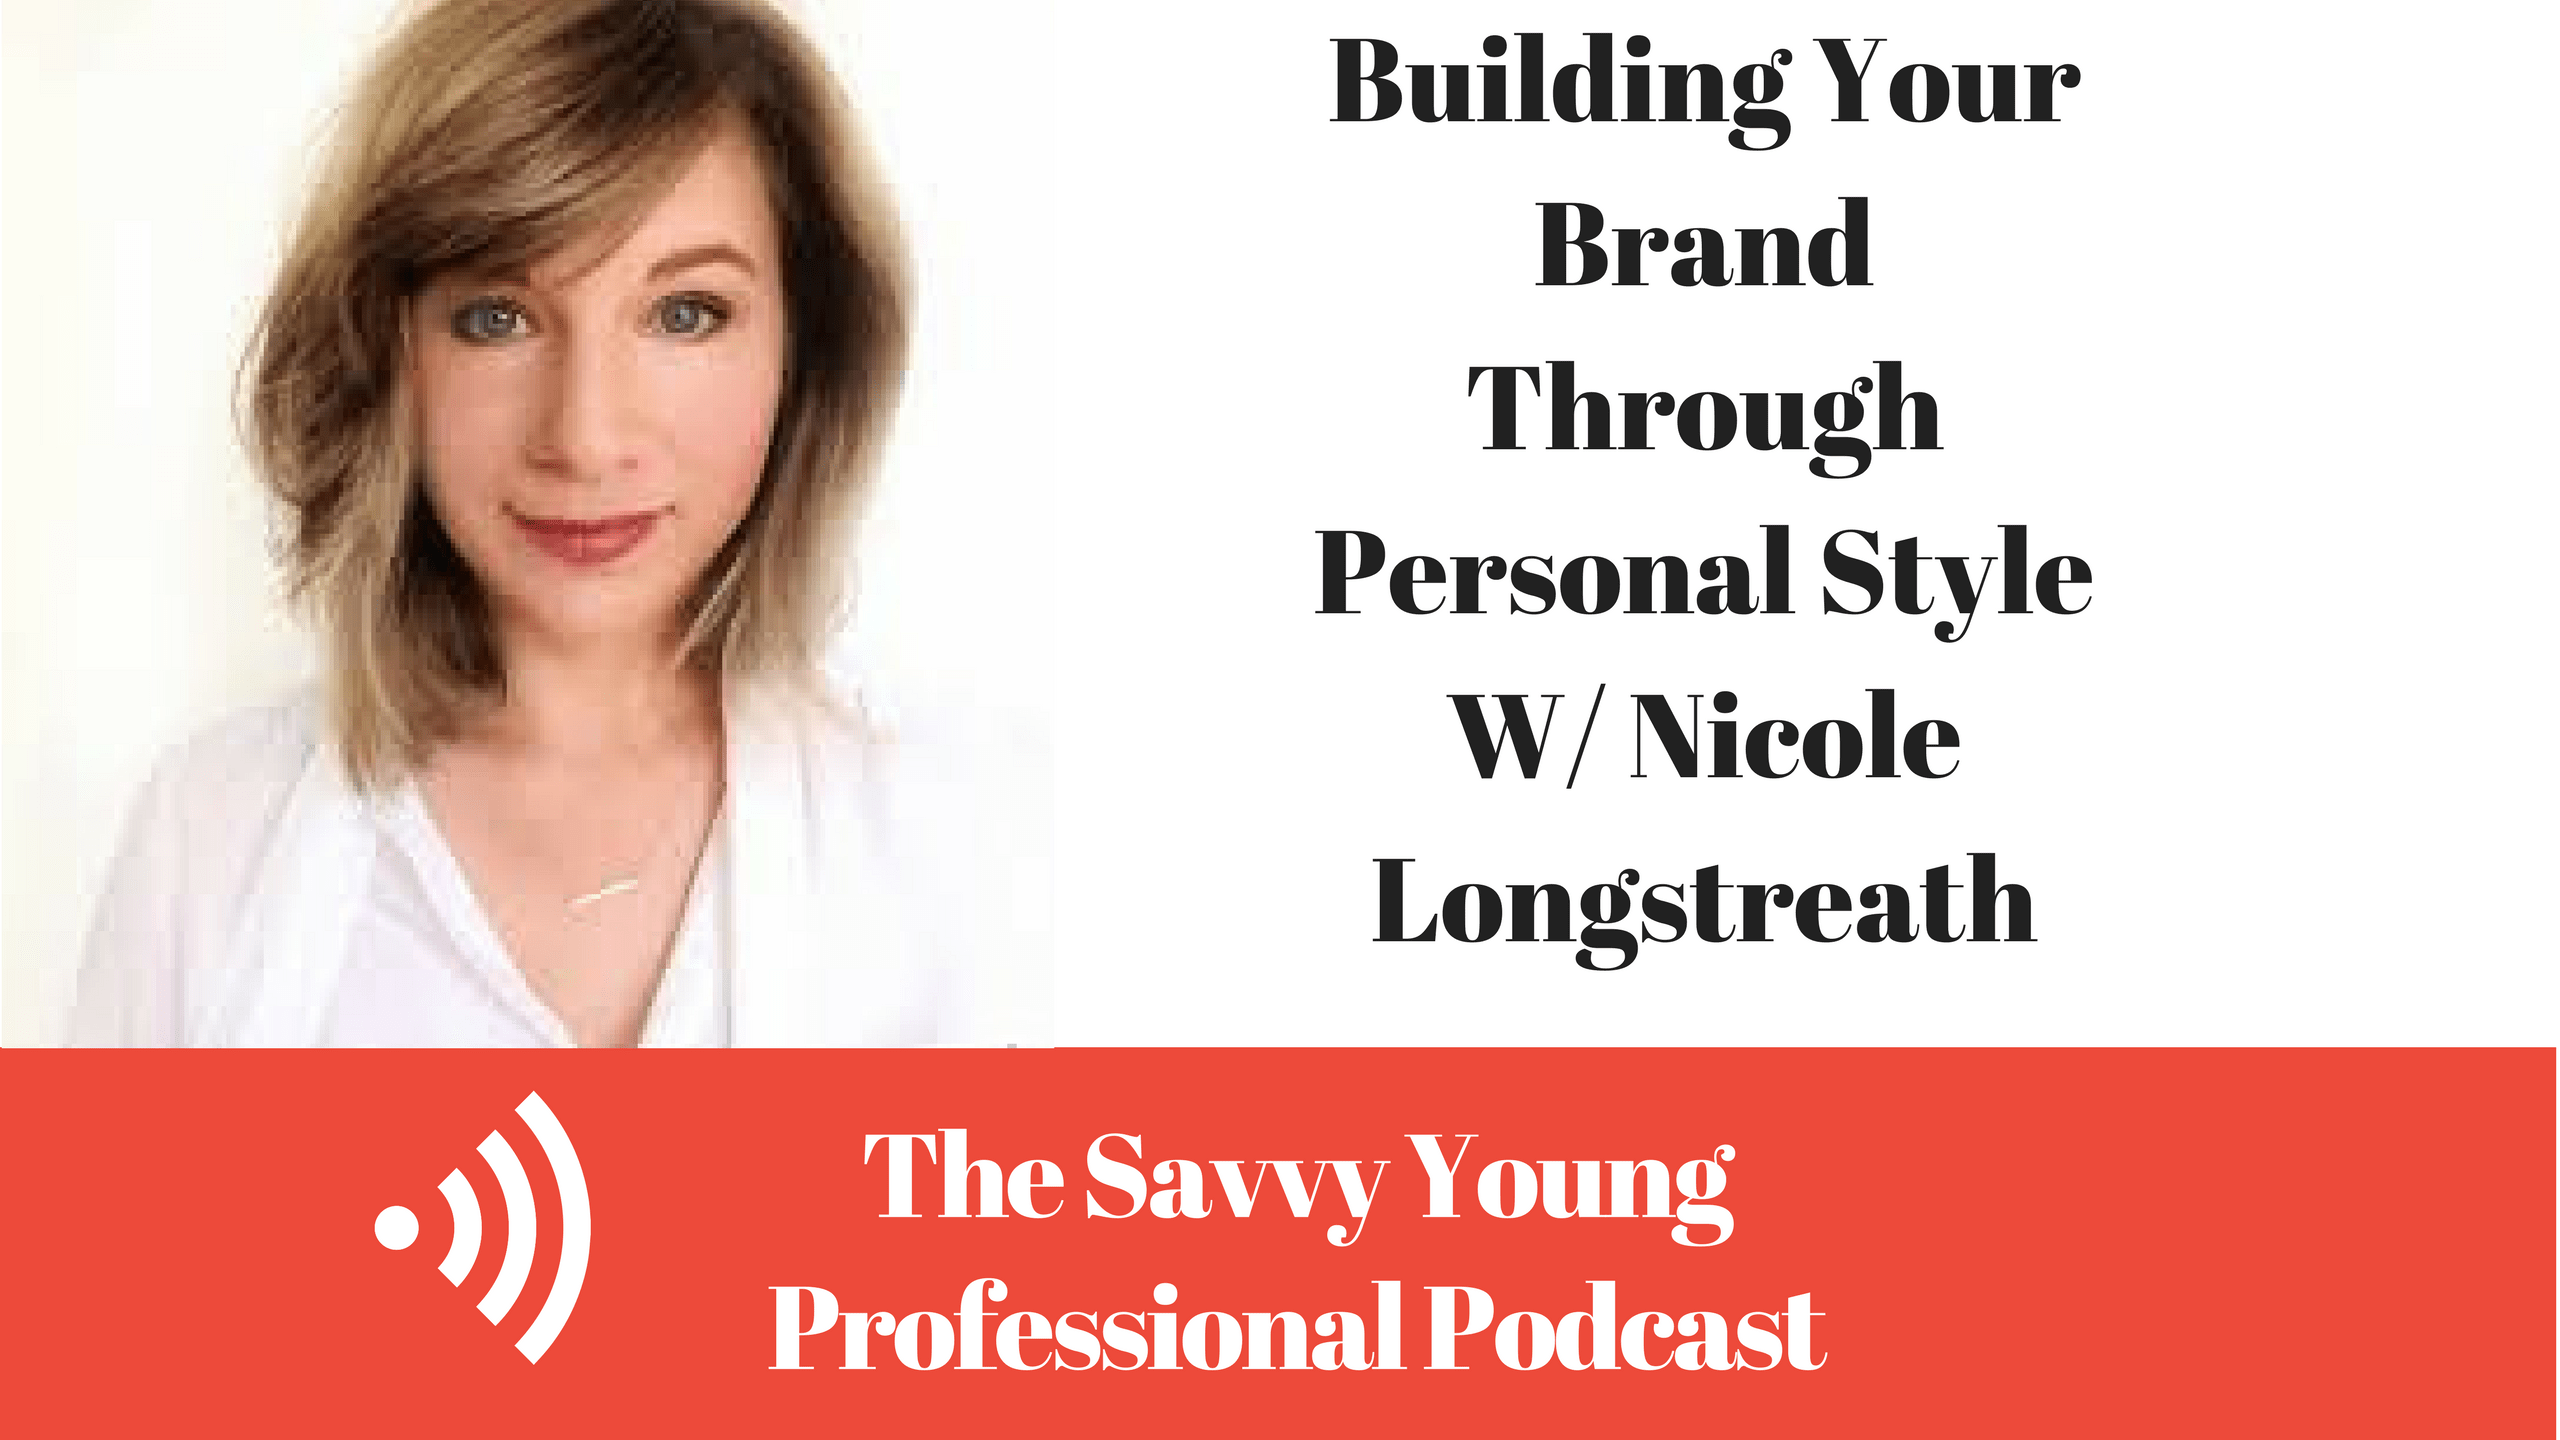 podcast-3-building-brand-personal-style-w-nicole-longstreath